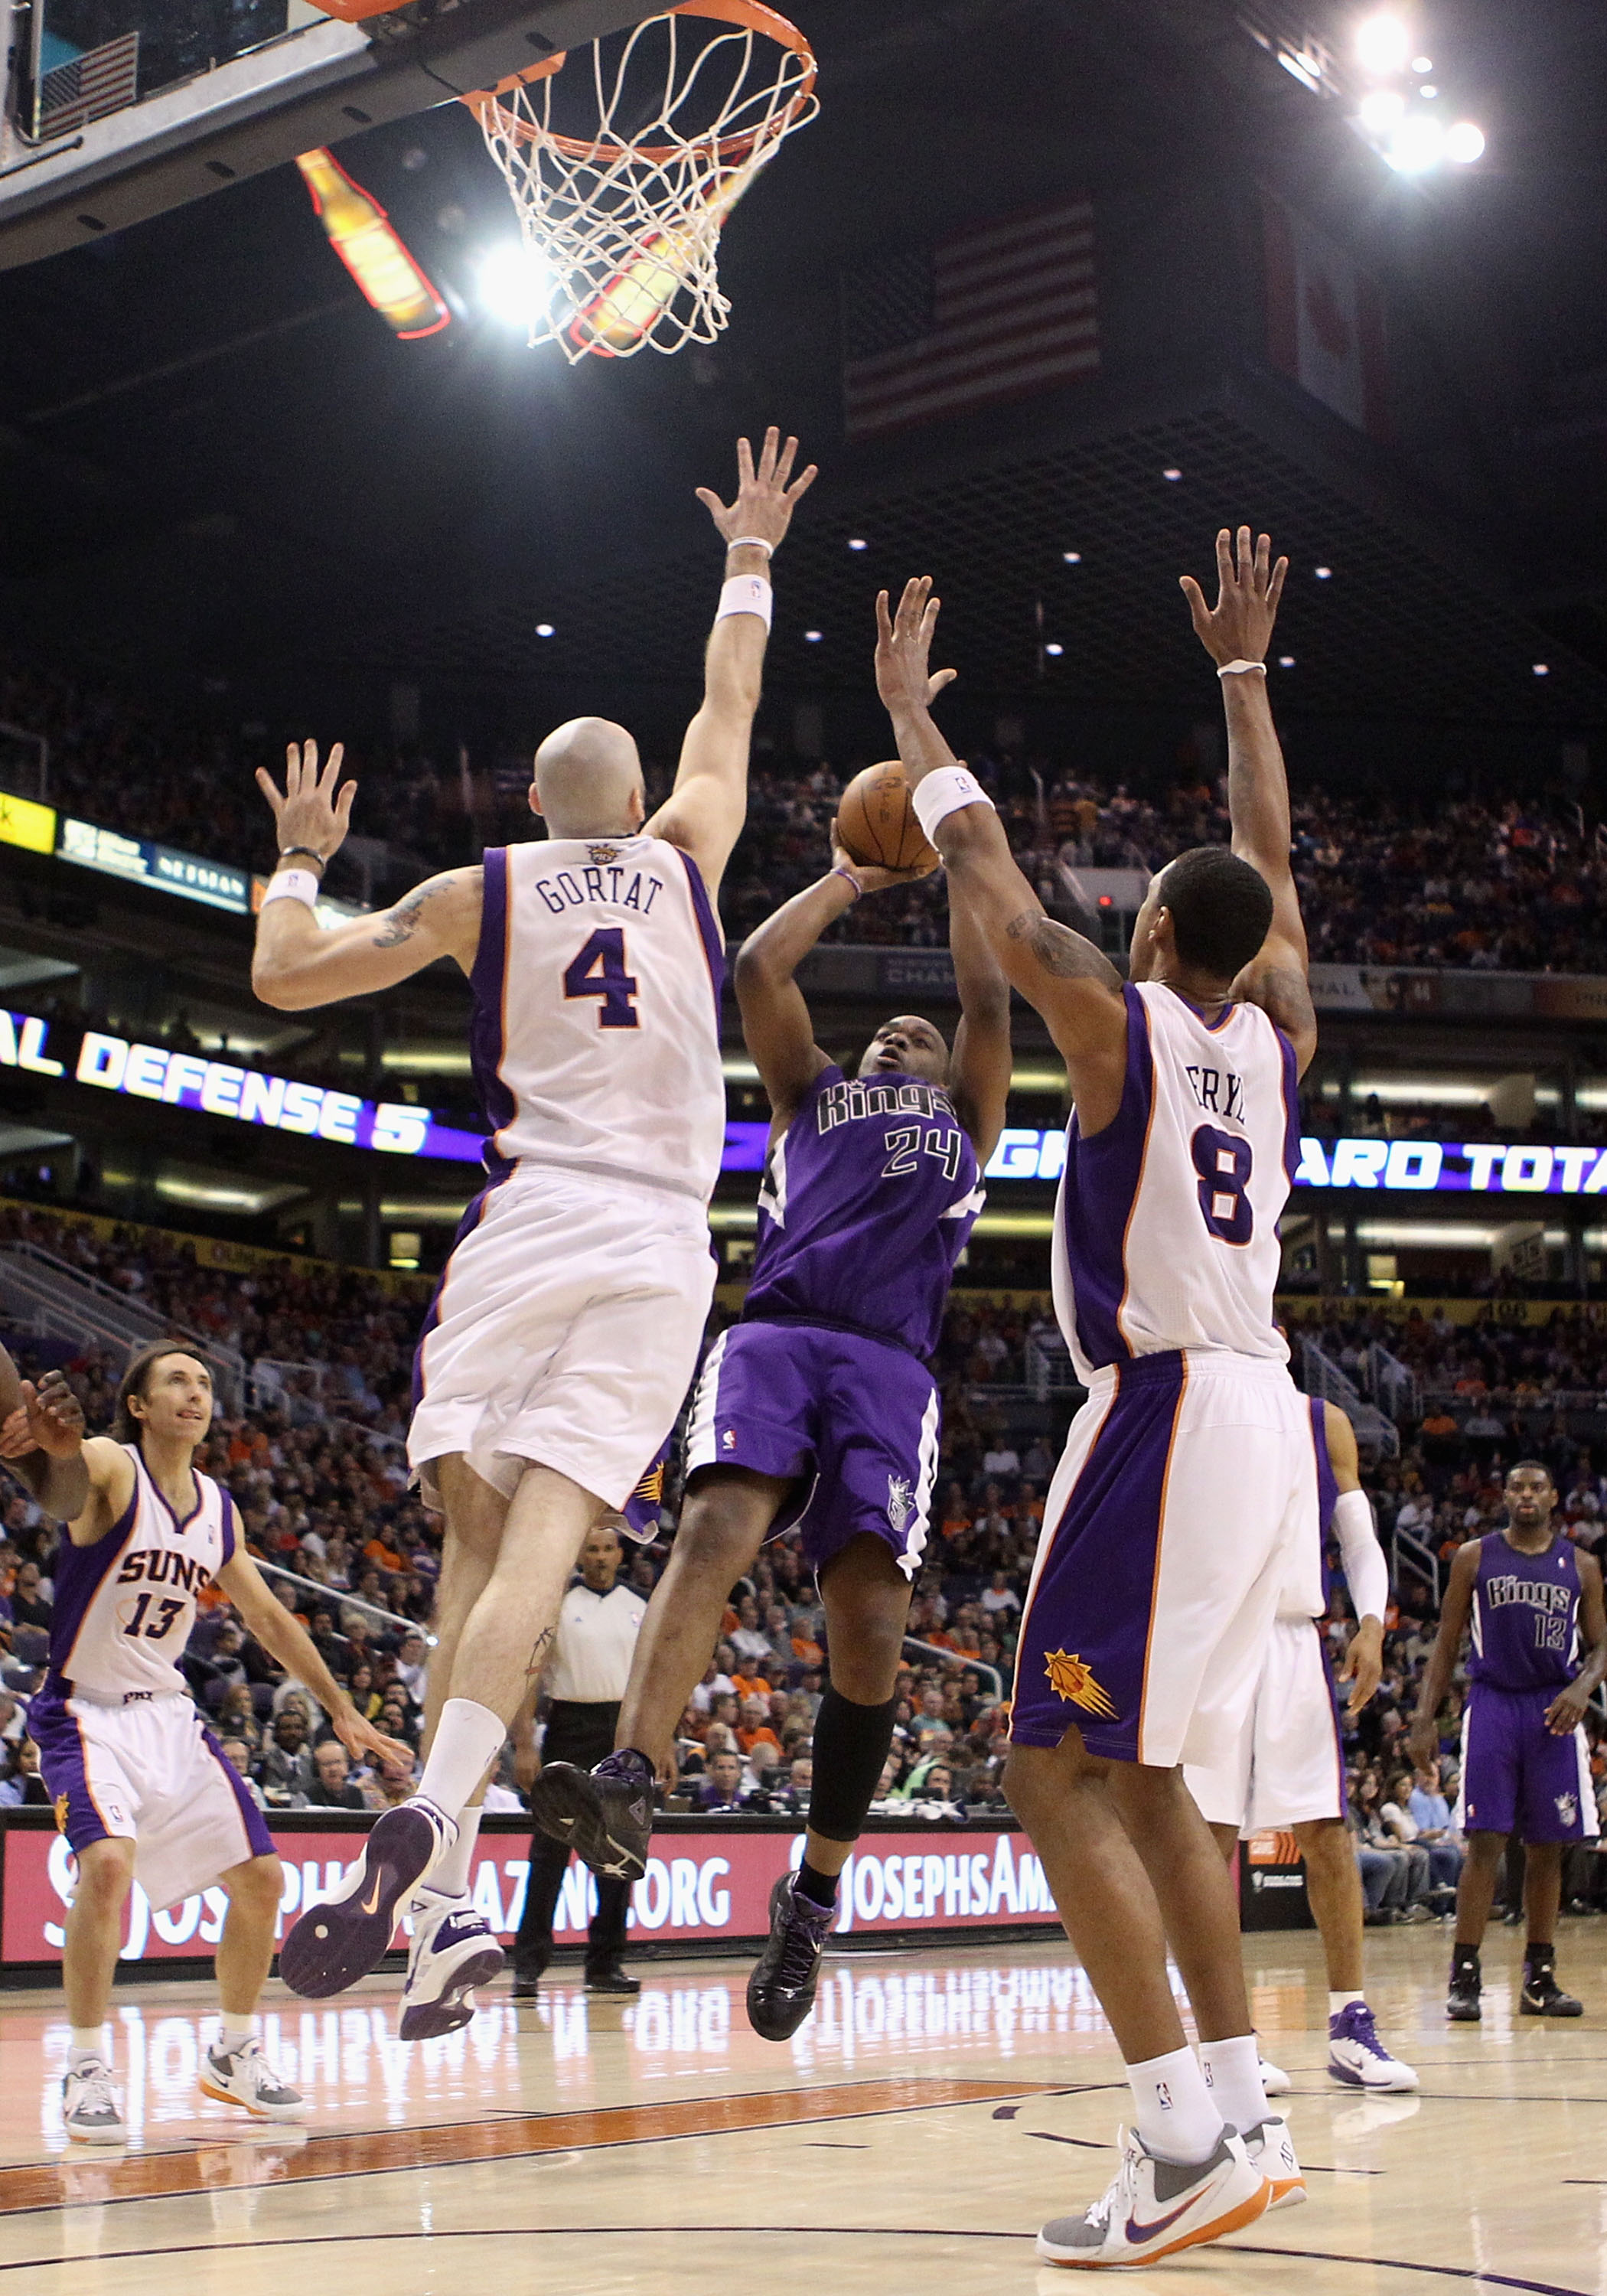 PHOENIX, AZ - FEBRUARY 13:  Carl Landry #24 of the Sacramento Kings puts up a shot against Marcin Gortat #4 and Channing Frye #8 of the Phoenix Suns during the NBA game at US Airways Center on February 13, 2011 in Phoenix, Arizona. The Kings defeated the